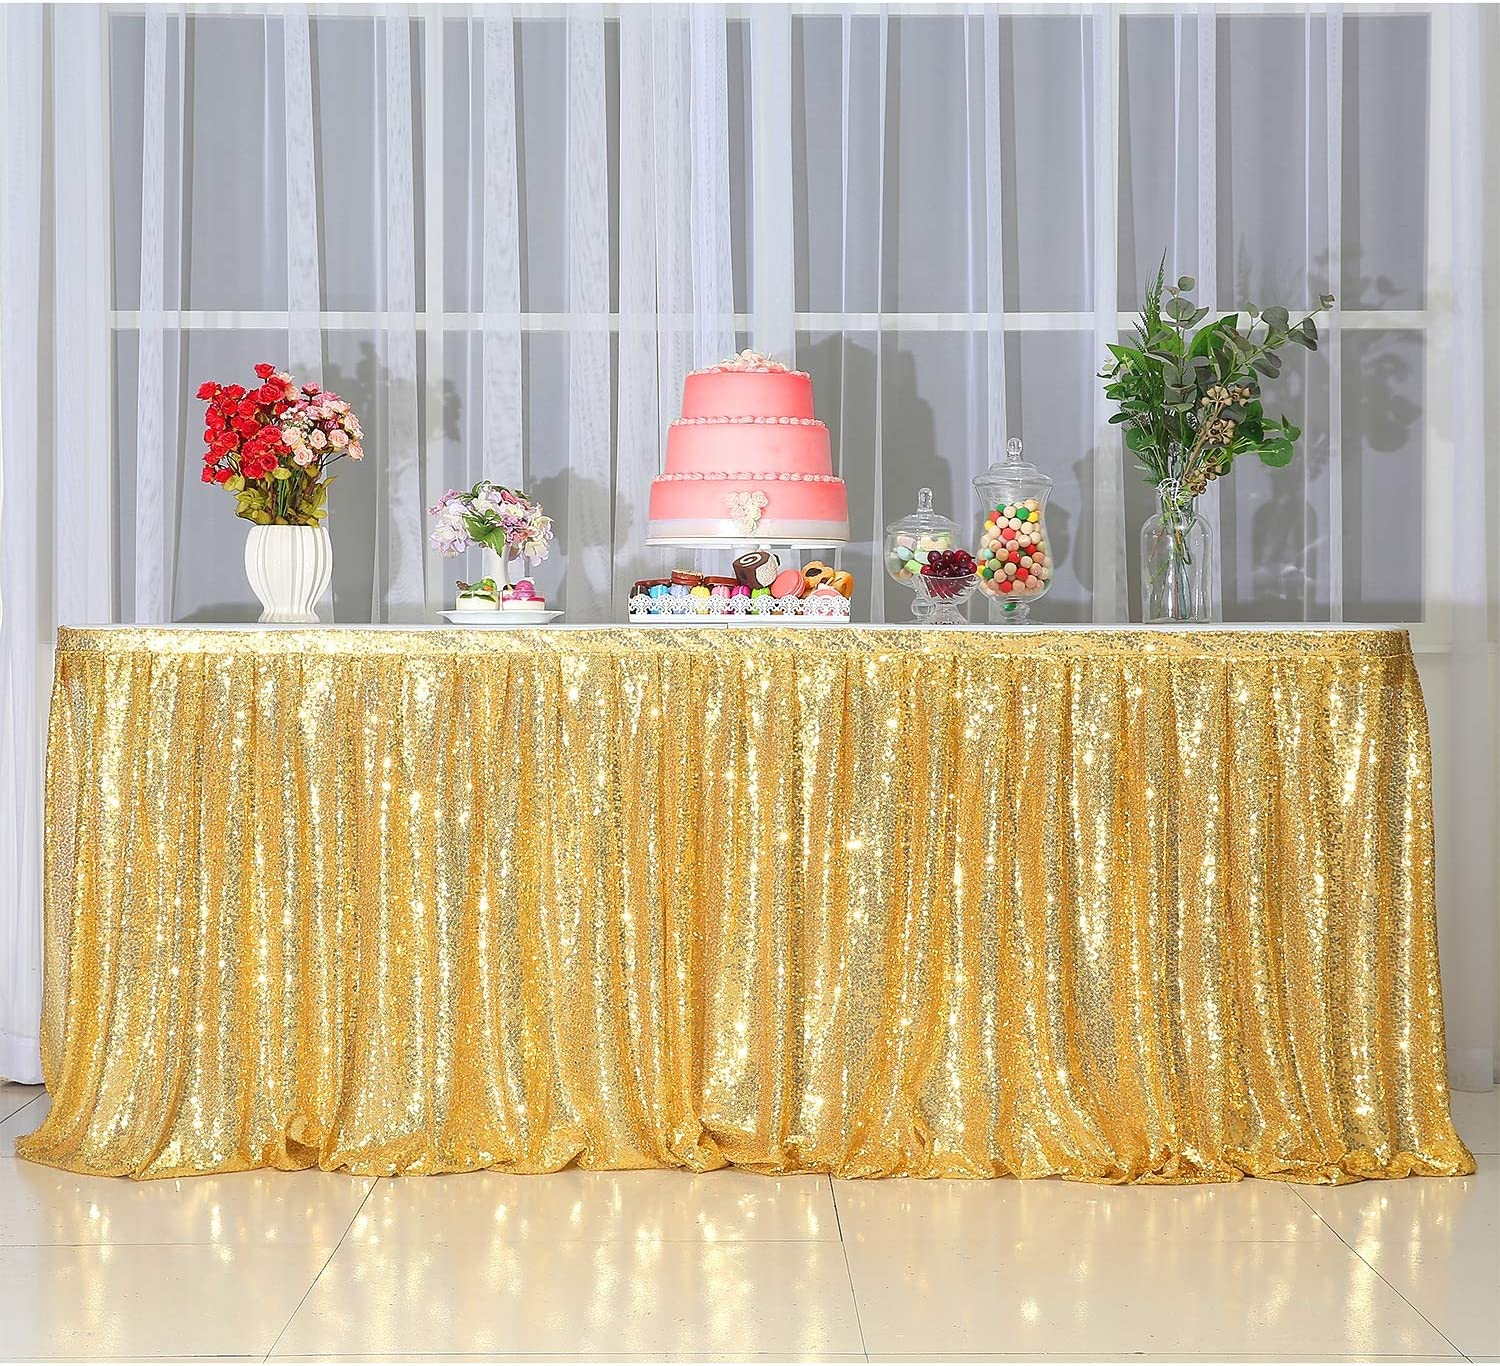 Spakly Draped 6ft wide x 30 inches drop Gold Table Skirt for Birthday Party Baby Shower Dessert Table Wedding Cake Table Exhibition Reception